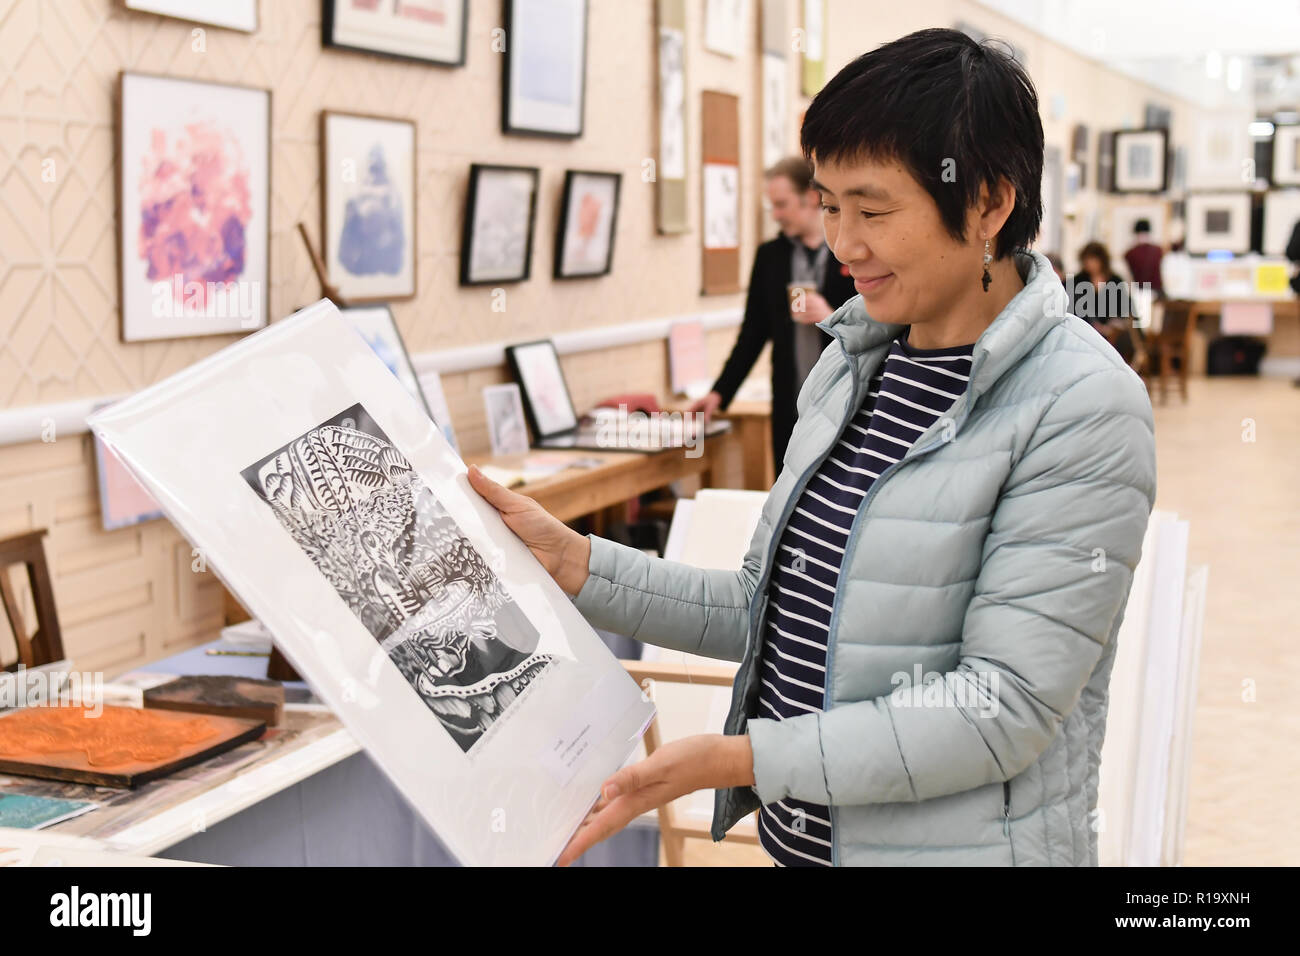 London, UK. 10th Nov, 2018. Muban Educational Trust exhibition at Winter blossom fair: A celebration of east asian art, craft and design at China Exchange on 10 November 2018, London, UK. Credit: Picture Capital/Alamy Live News - Stock Image